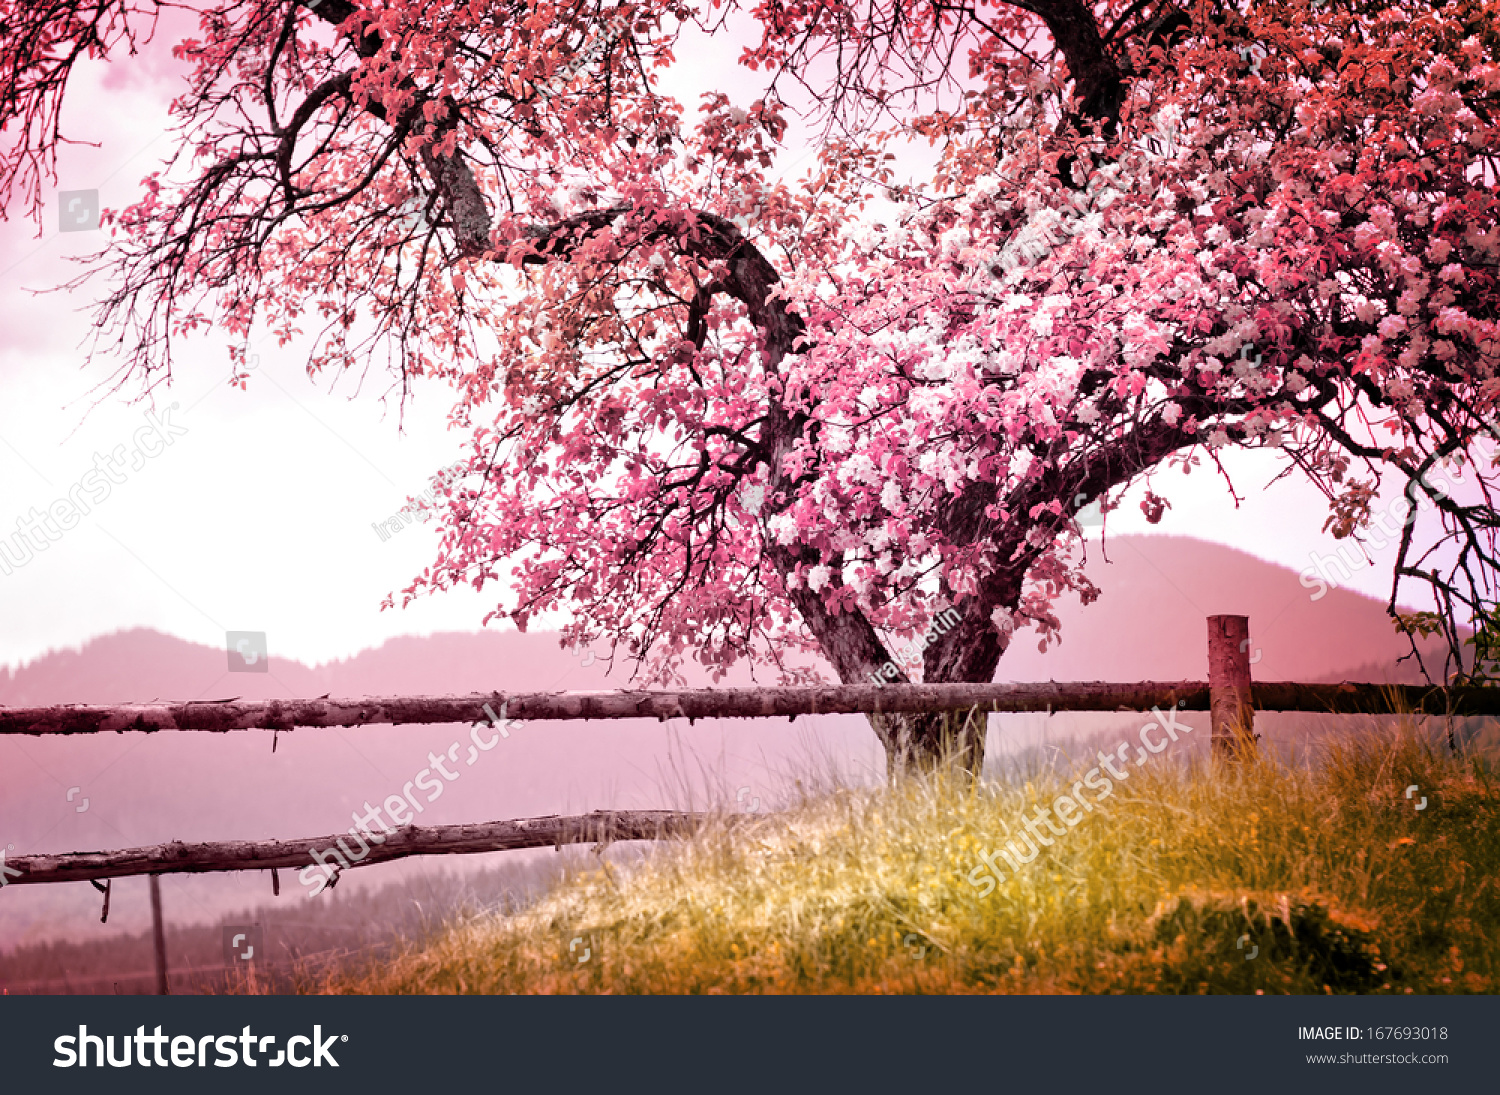 blossom tree over nature background spring stock photo edit now